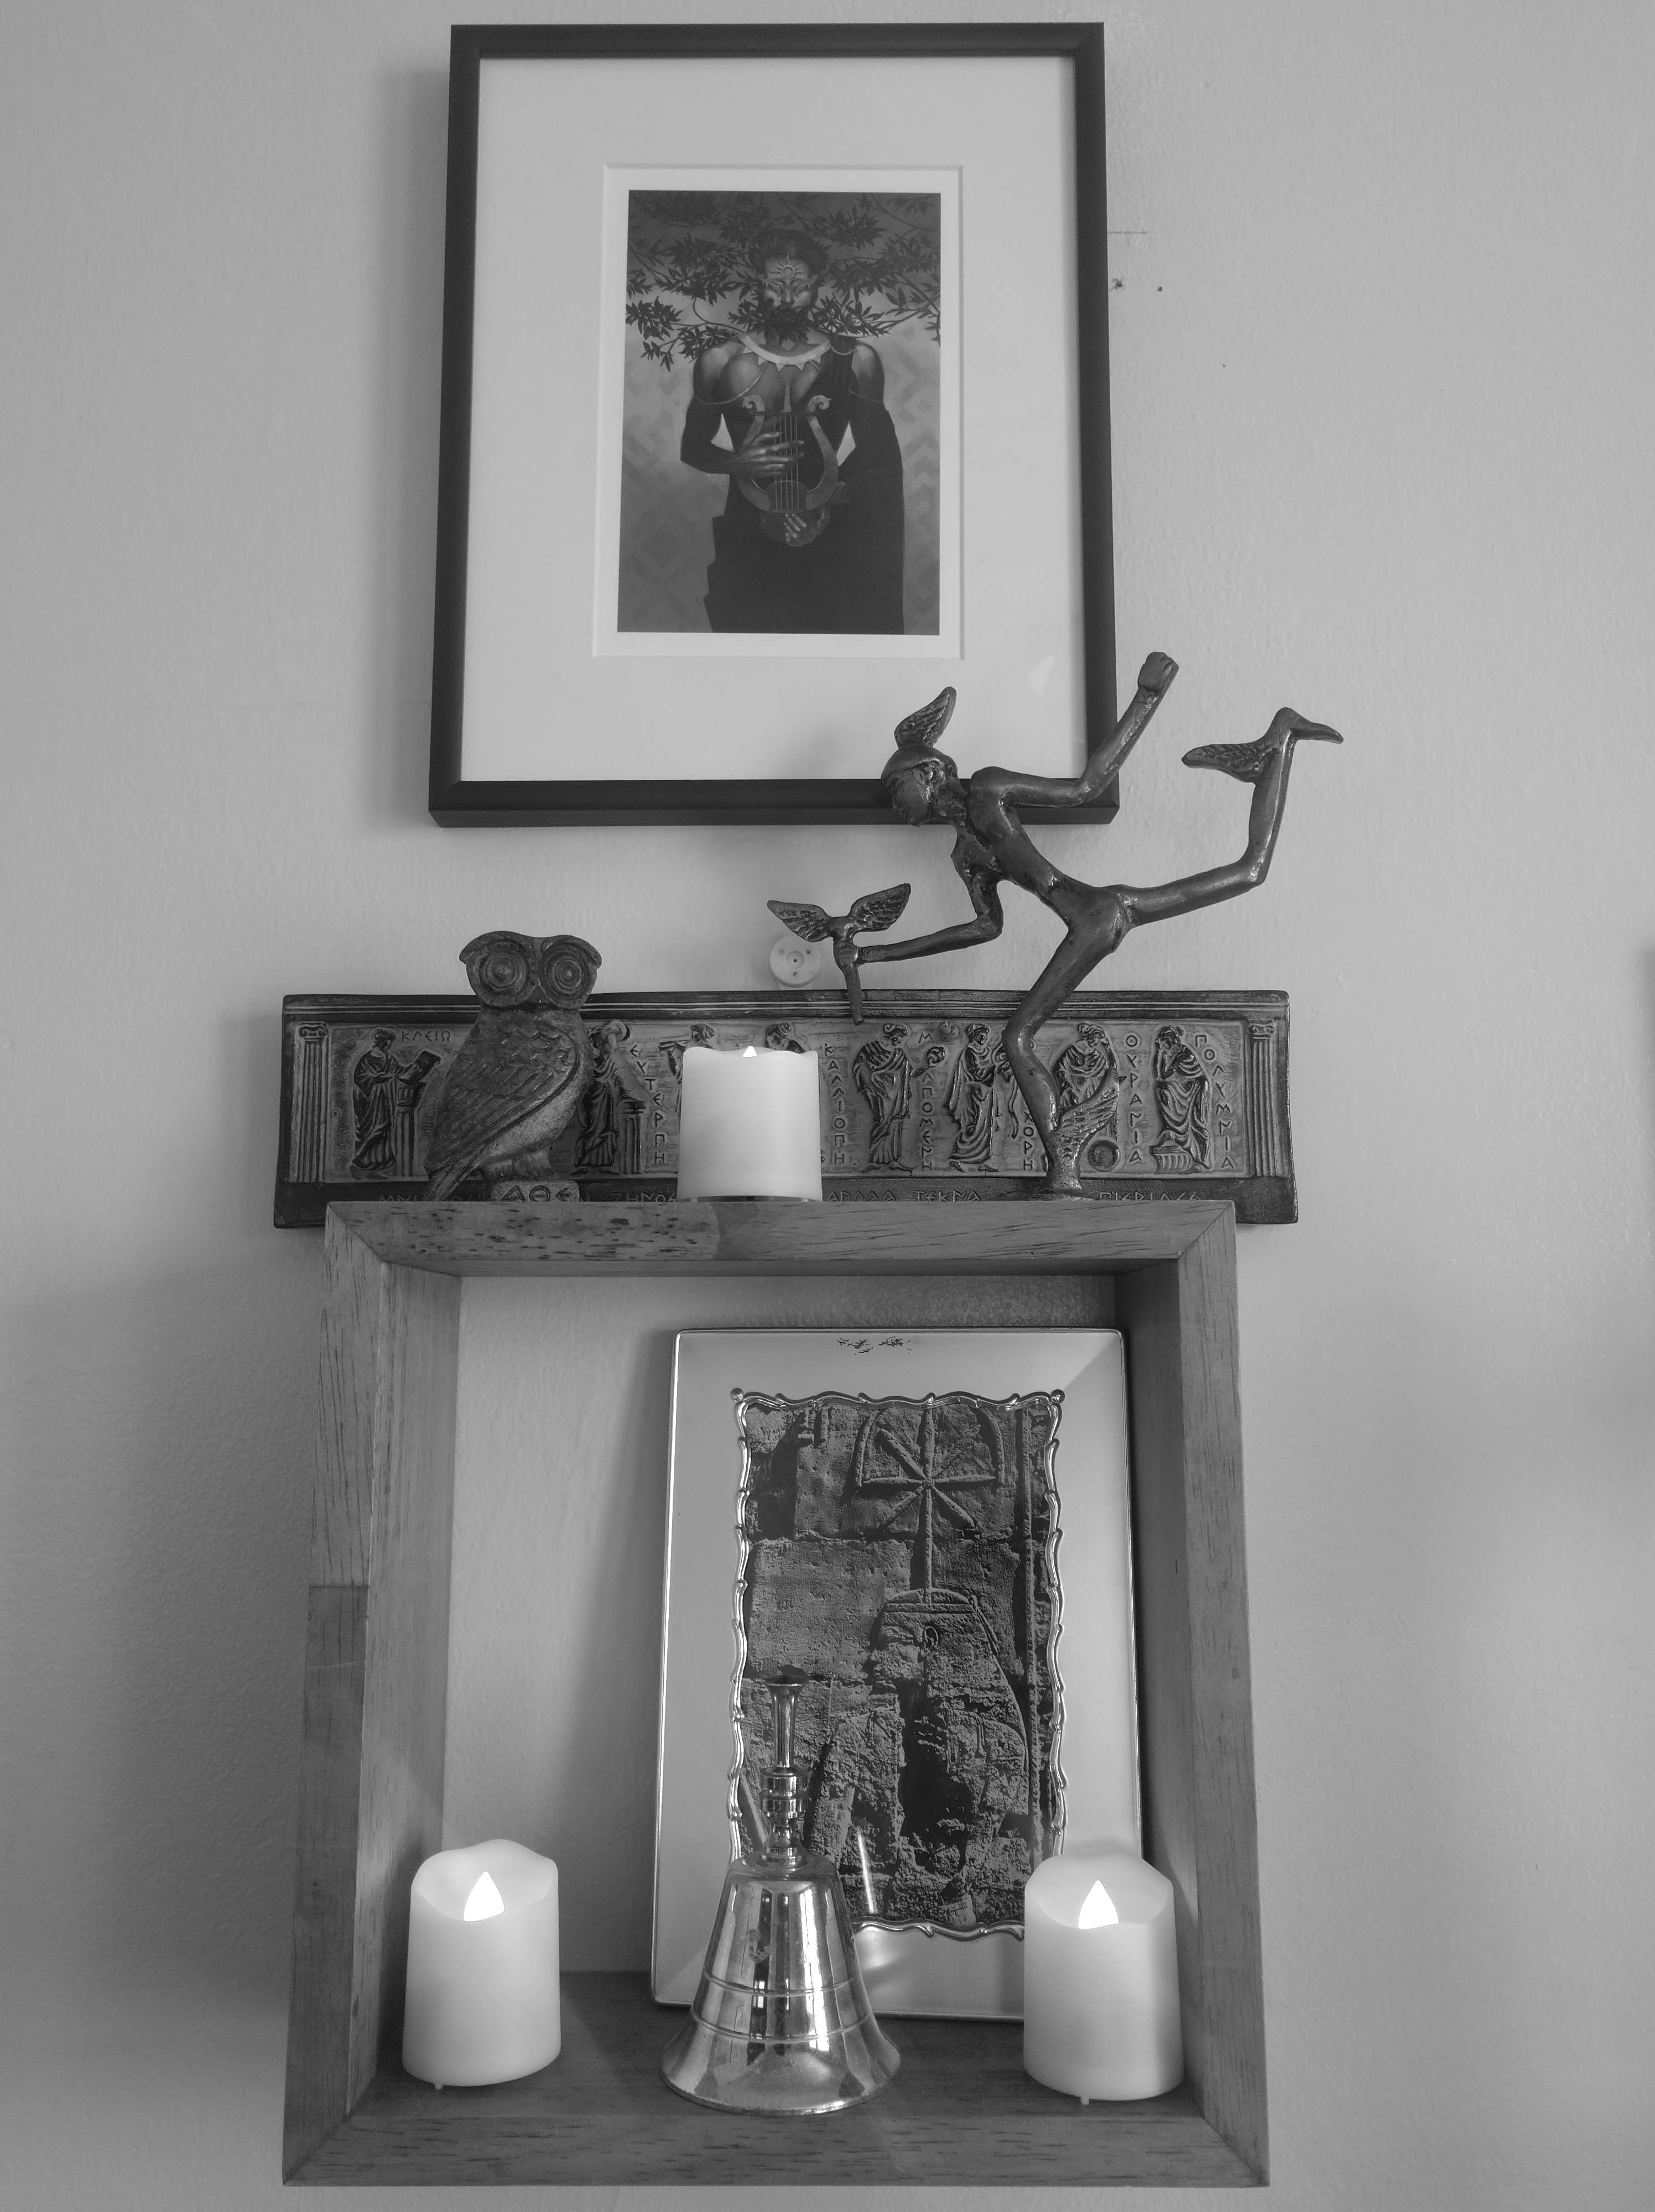 The same shrine in black and white with candles lit.